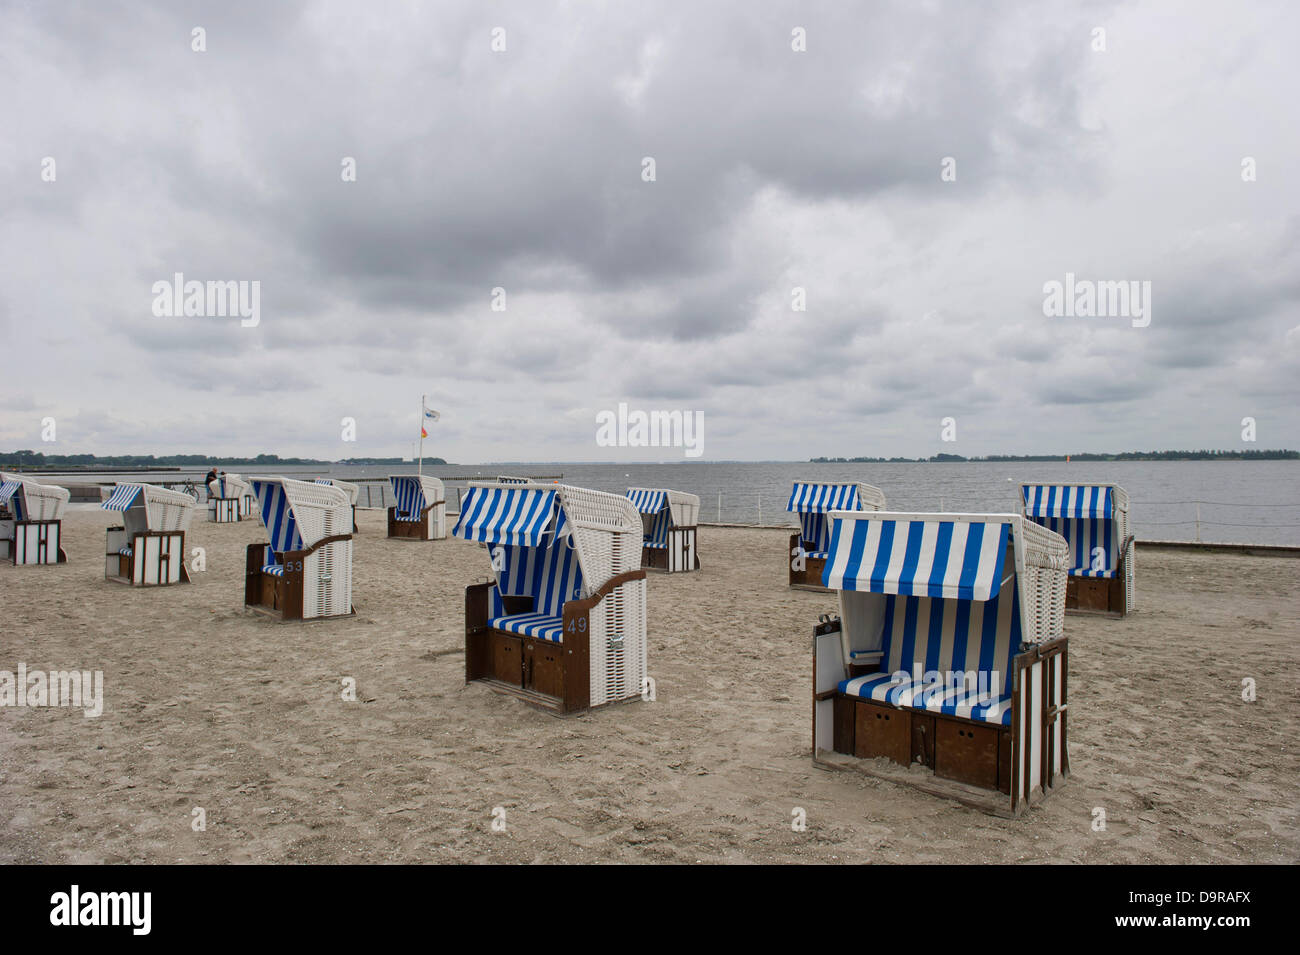 Best beach chair 2013 - Empty Beach Chairs Are Pictured On The Beach In Stralsund Germany 25 June 2013 Photo Stefan Sauer